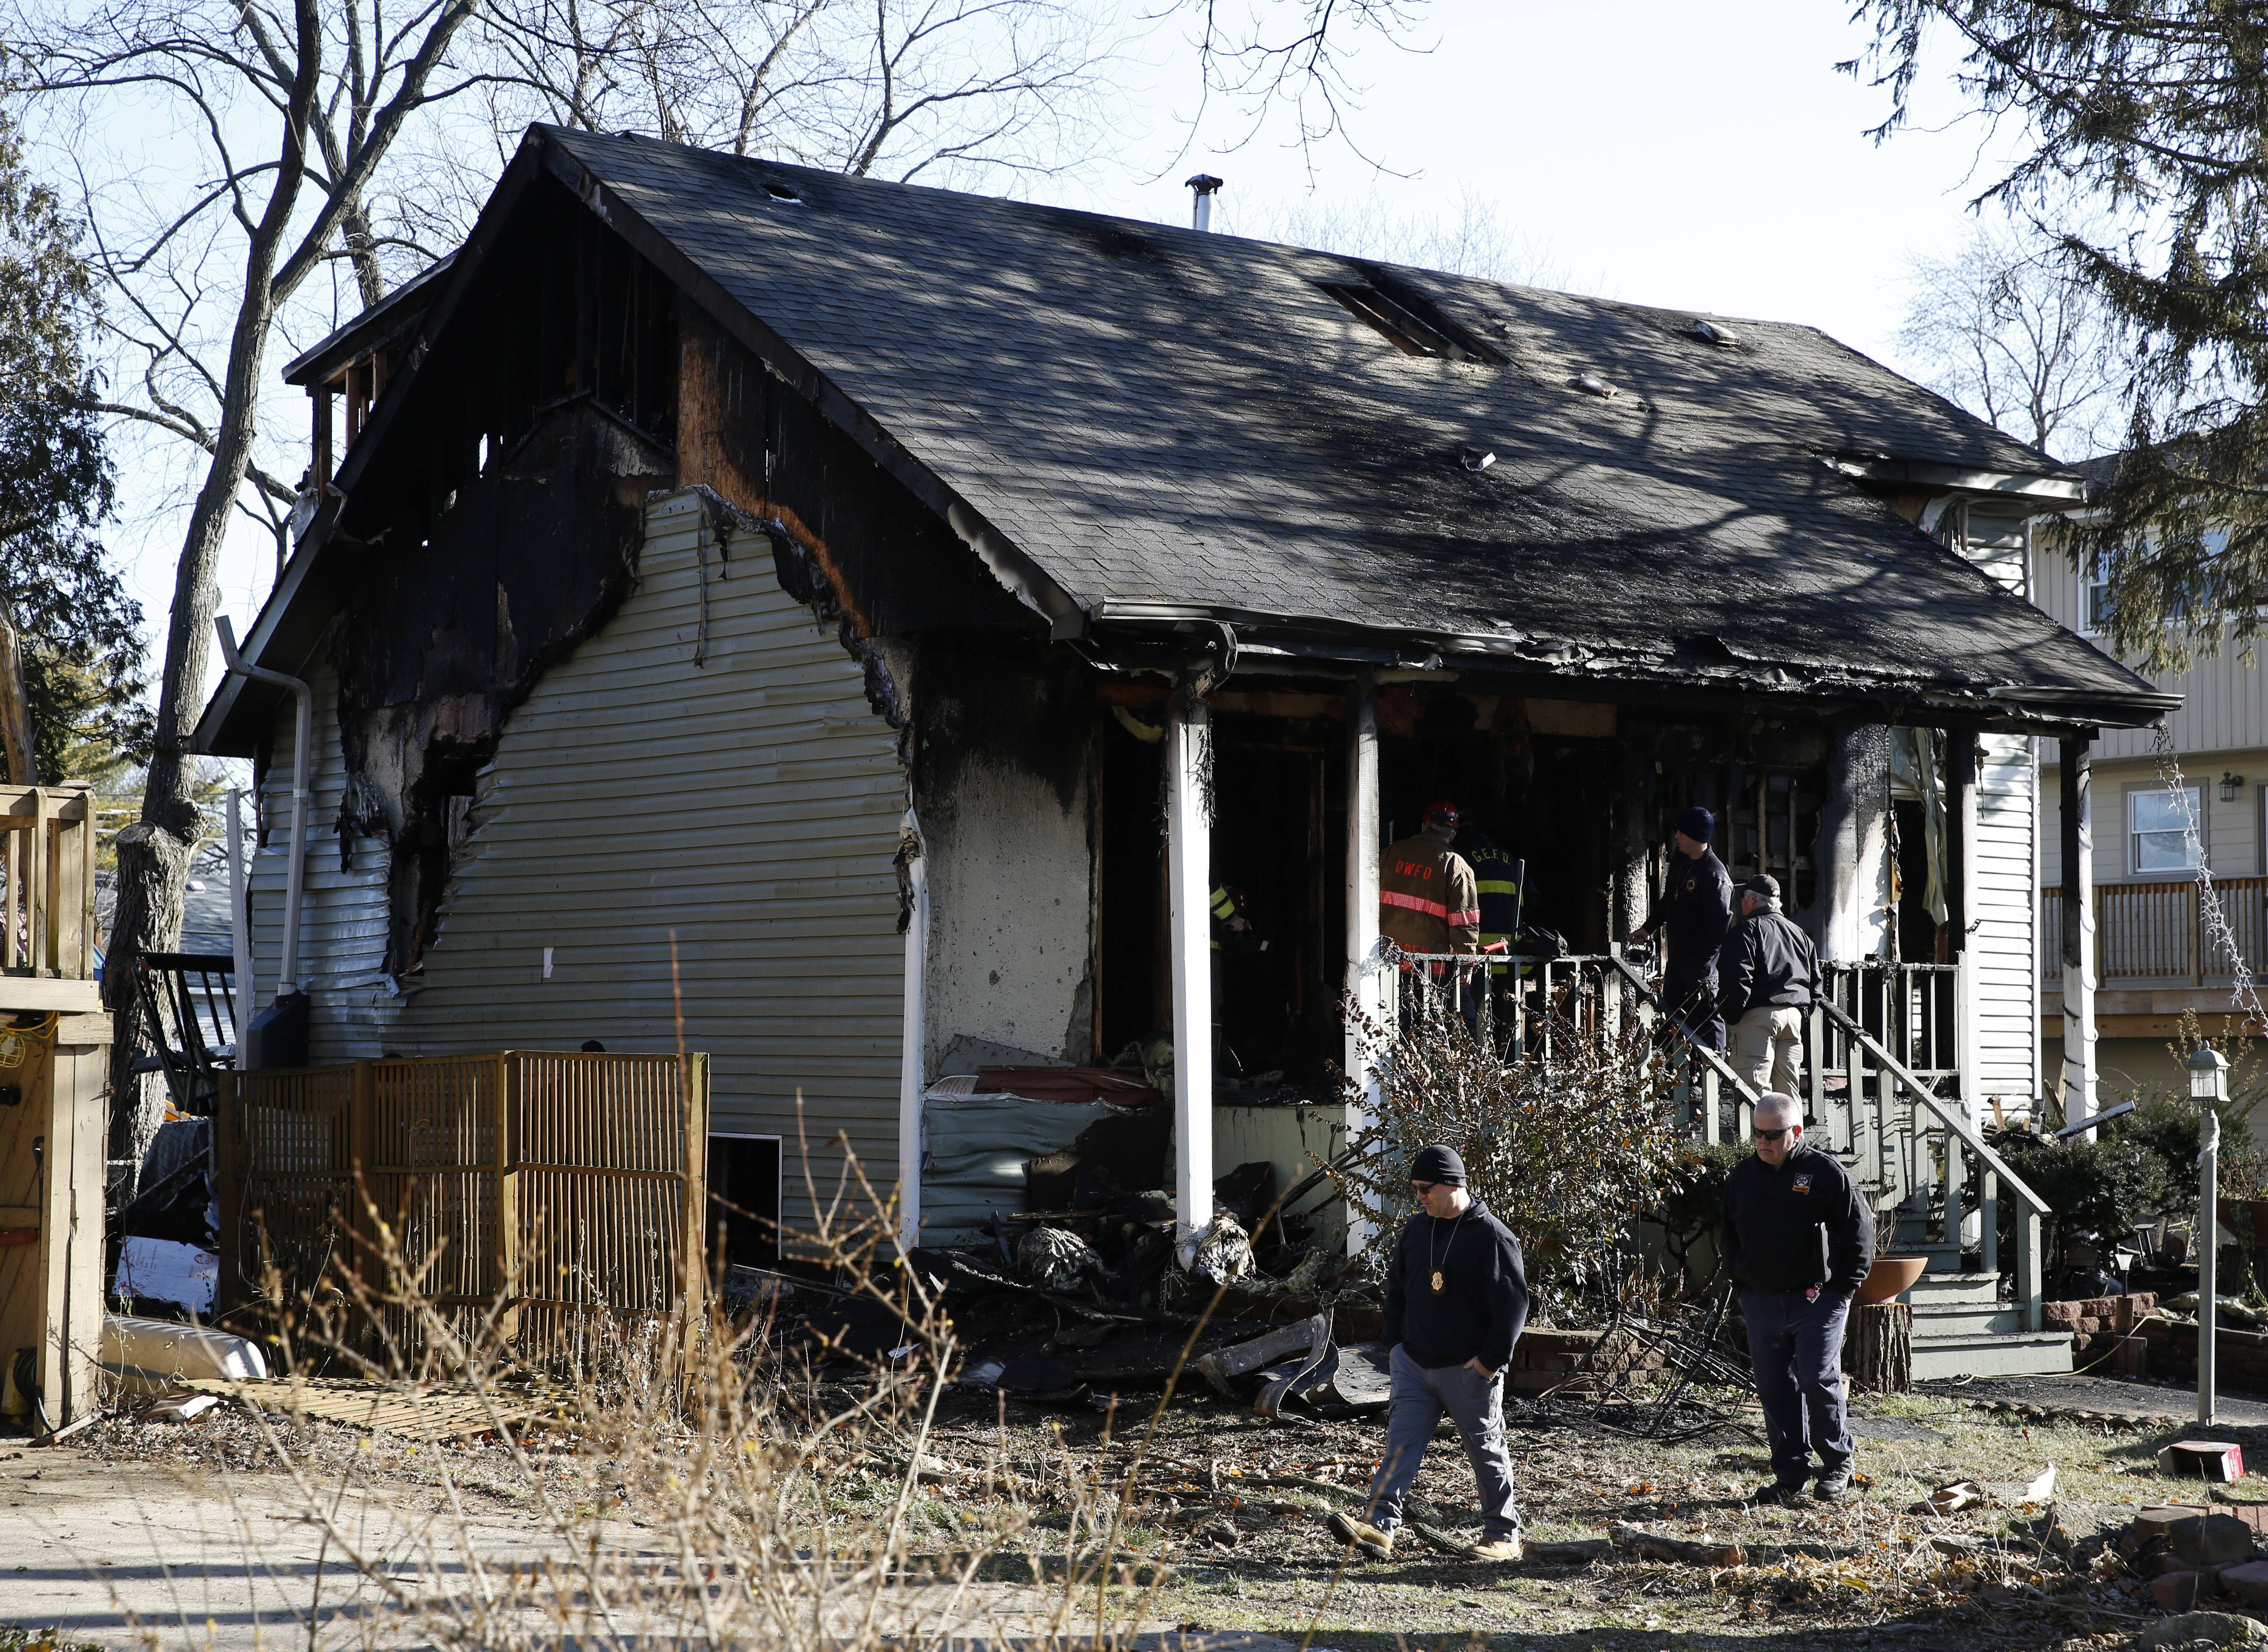 Officials investigate the aftermath of a fire in the 4700 block of Dumoulin Avenue in Lisle which sent two adults and four children ages 3-12 to the hospital.